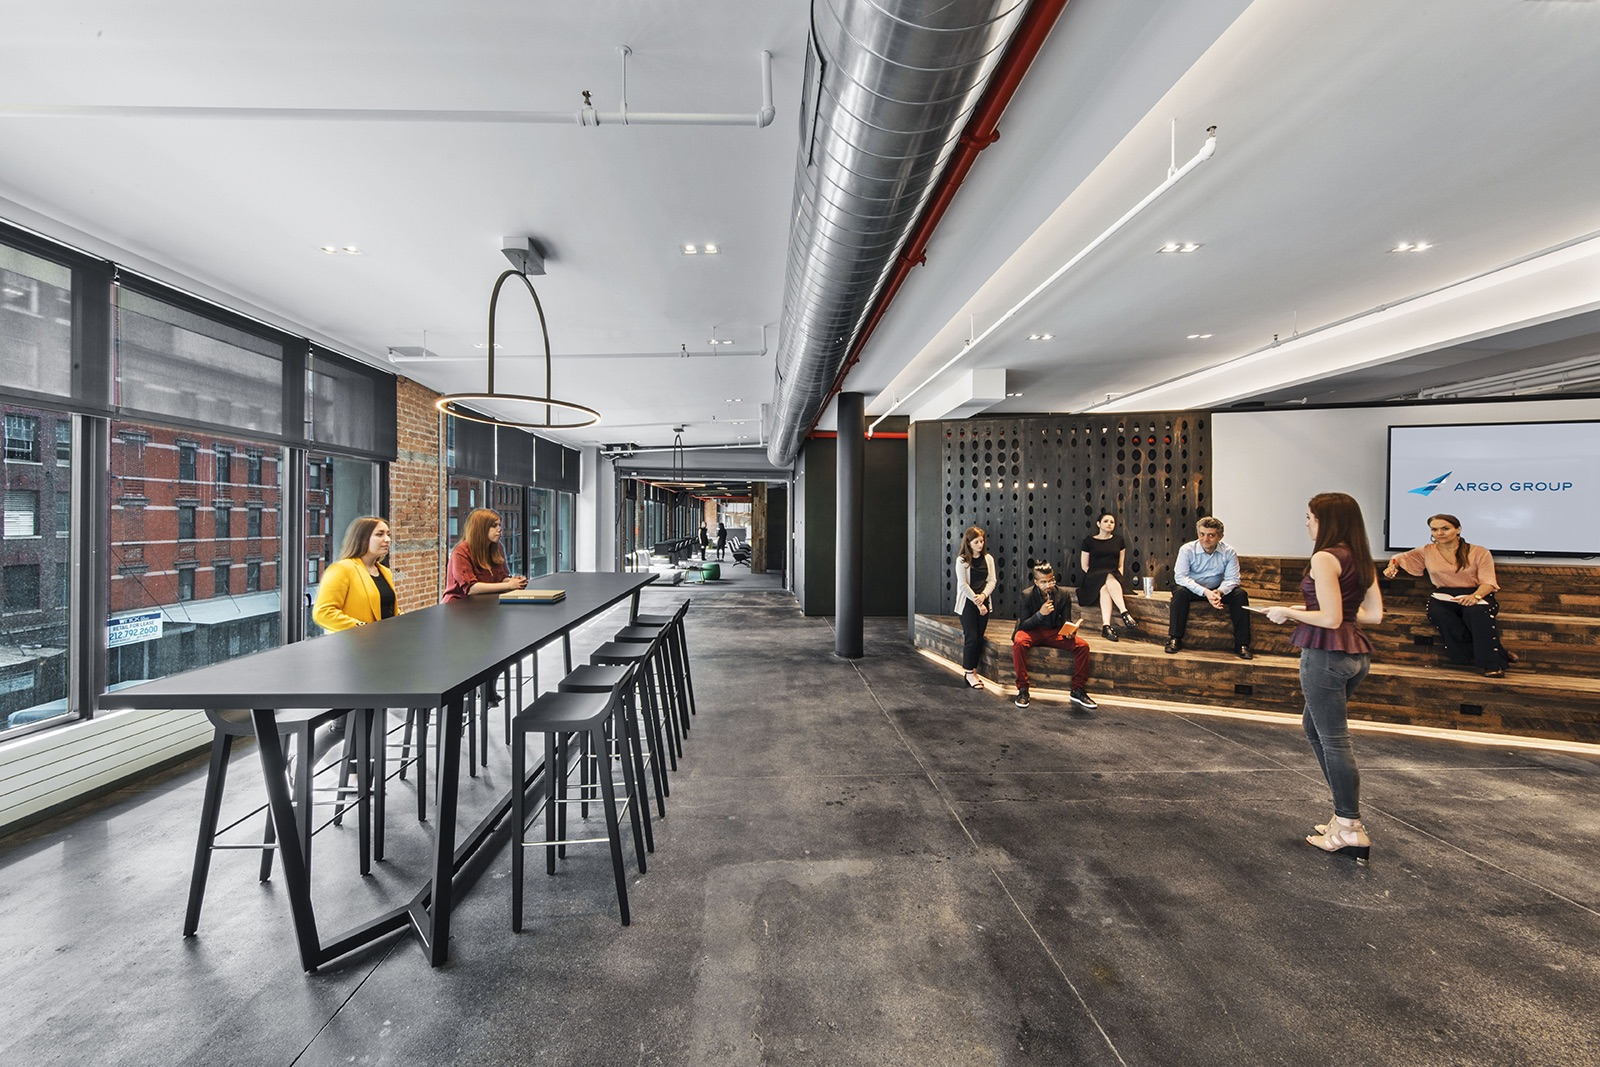 argo-group-nyc-office-6